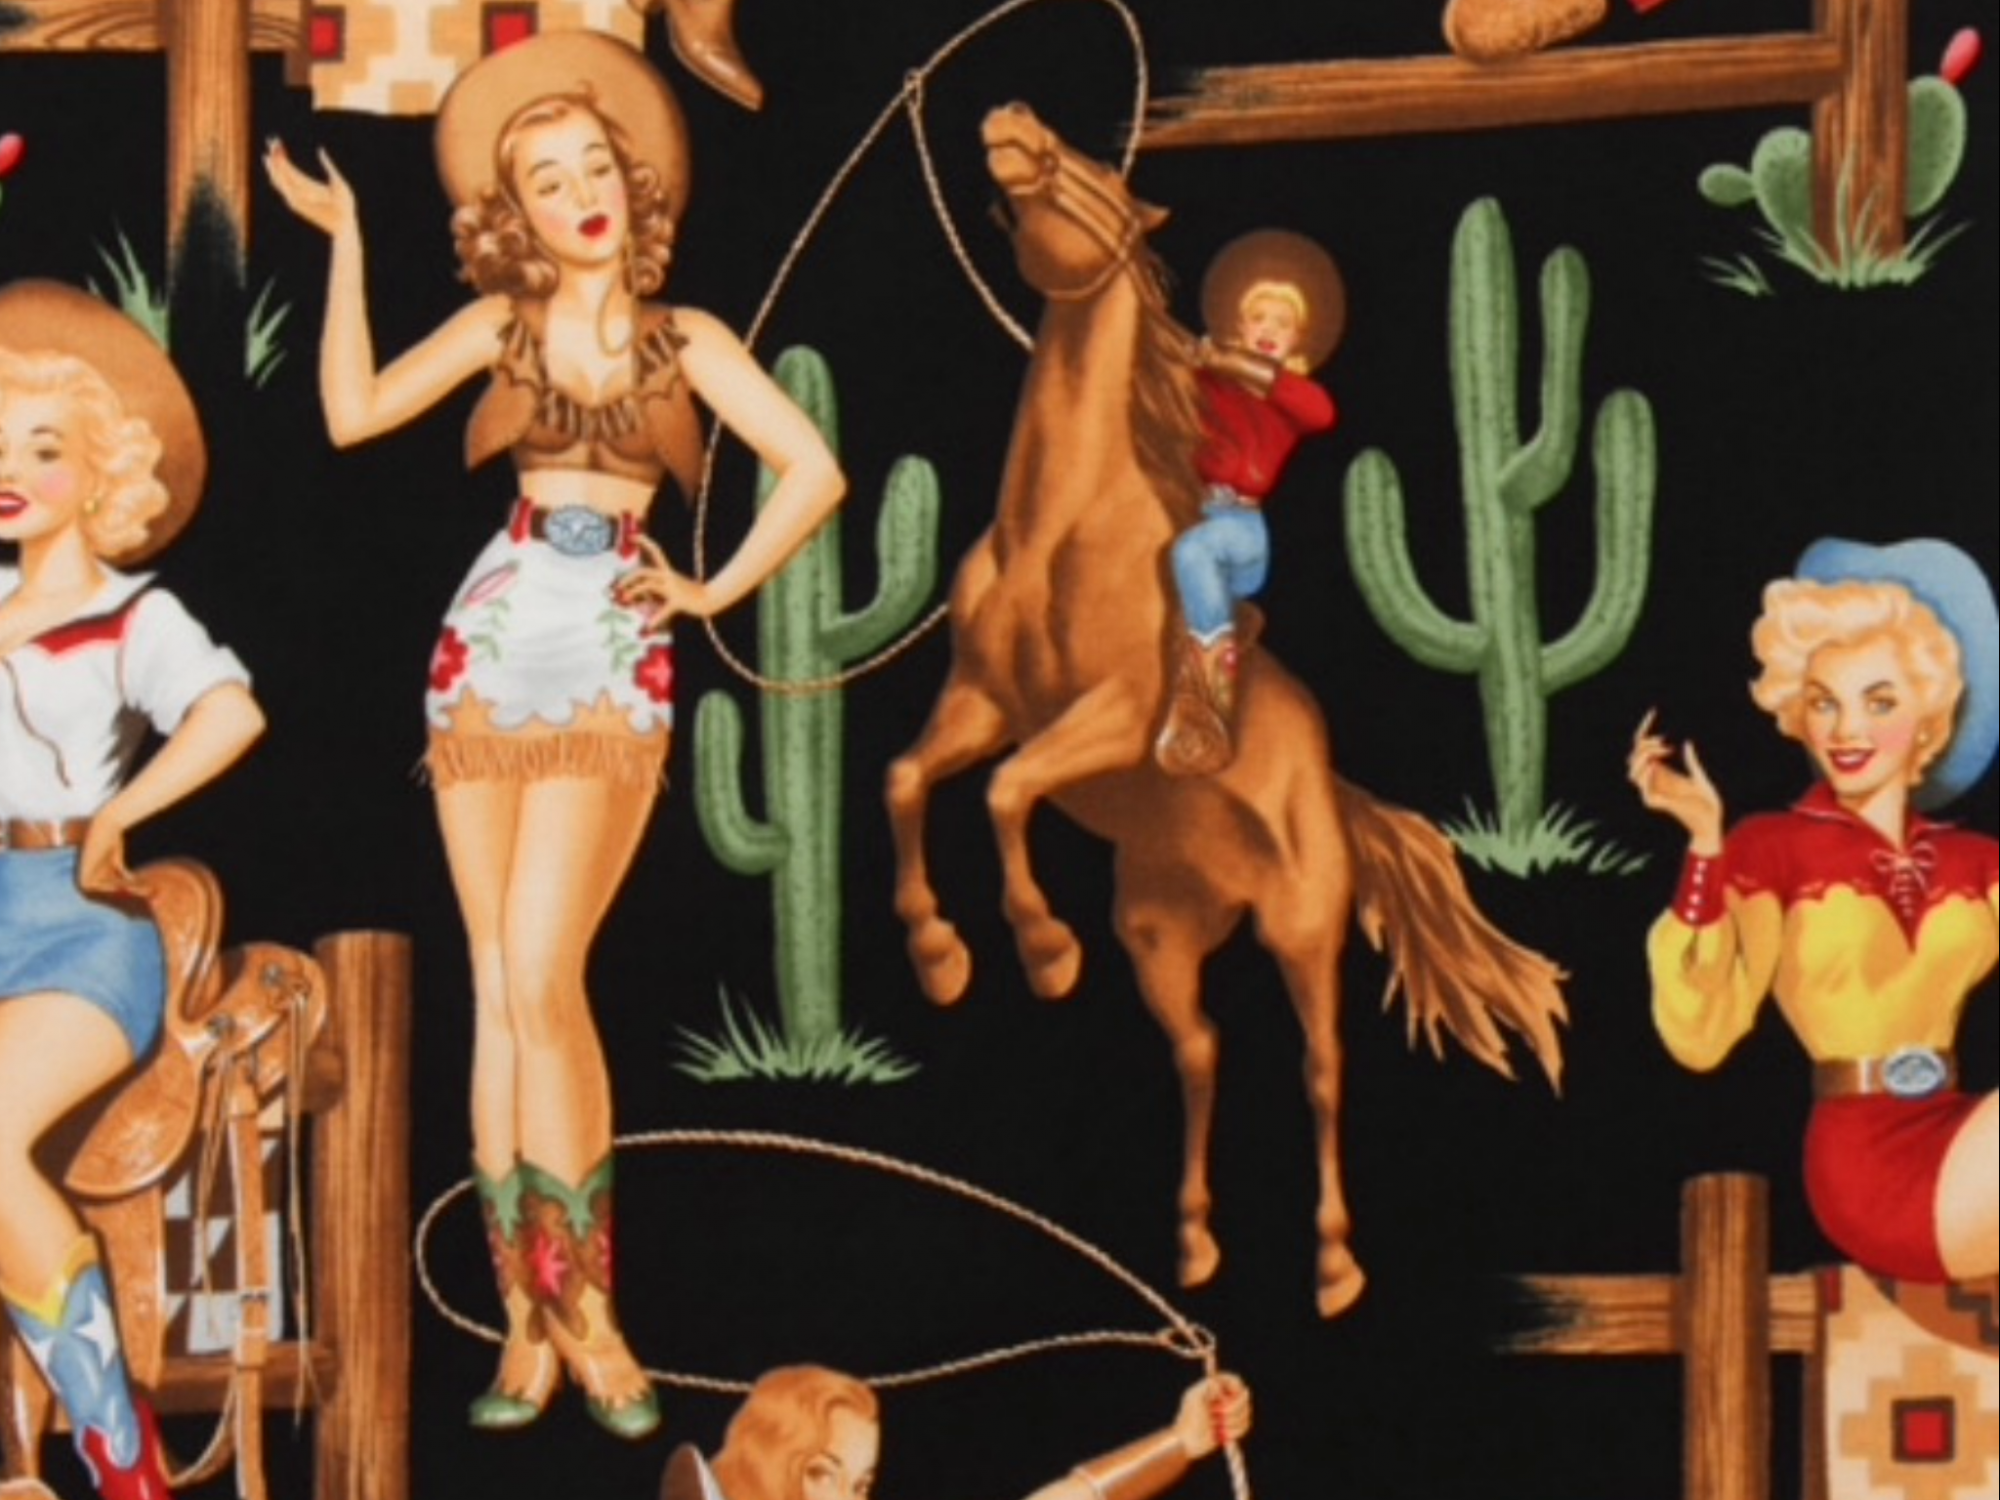 Wild West Sexy Pin Up Girl Back in the Saddle Cowgirl Rodeo Alexander Henry  Texas Boots Fringe Cactus Horse Cotton Quilt Fabric AH219